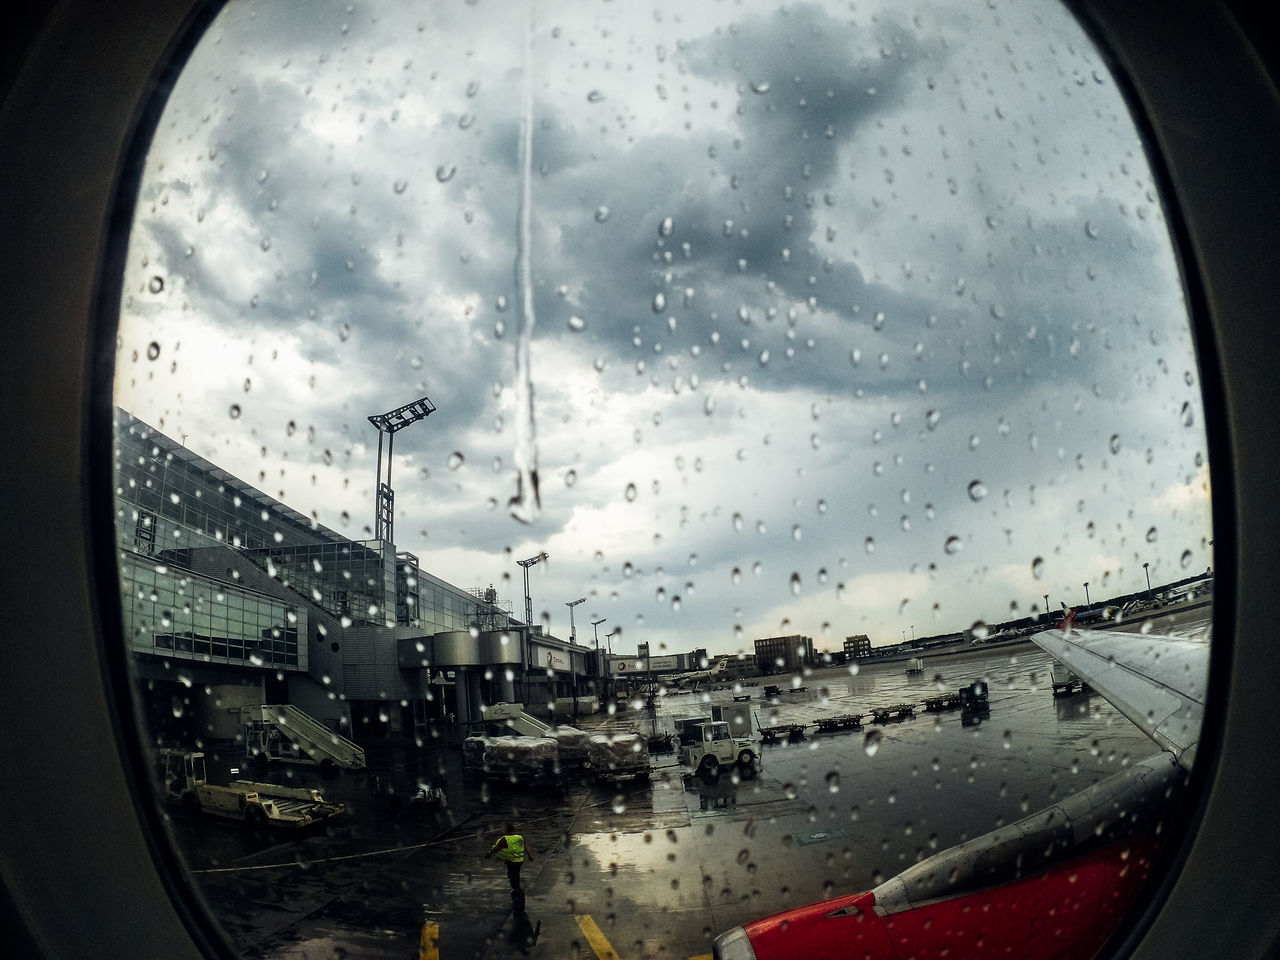 Airplane Airport Boarding Car Cloud - Sky Drop Enjoy Finding New Frontiers Flight Glass - Material Monsoon Rain RainDrop Rainy Season Sky Start A Trip Transparent Transportation Traveling Home For The Holidays Vacations Vehicle Interior Water Weather Wet Window